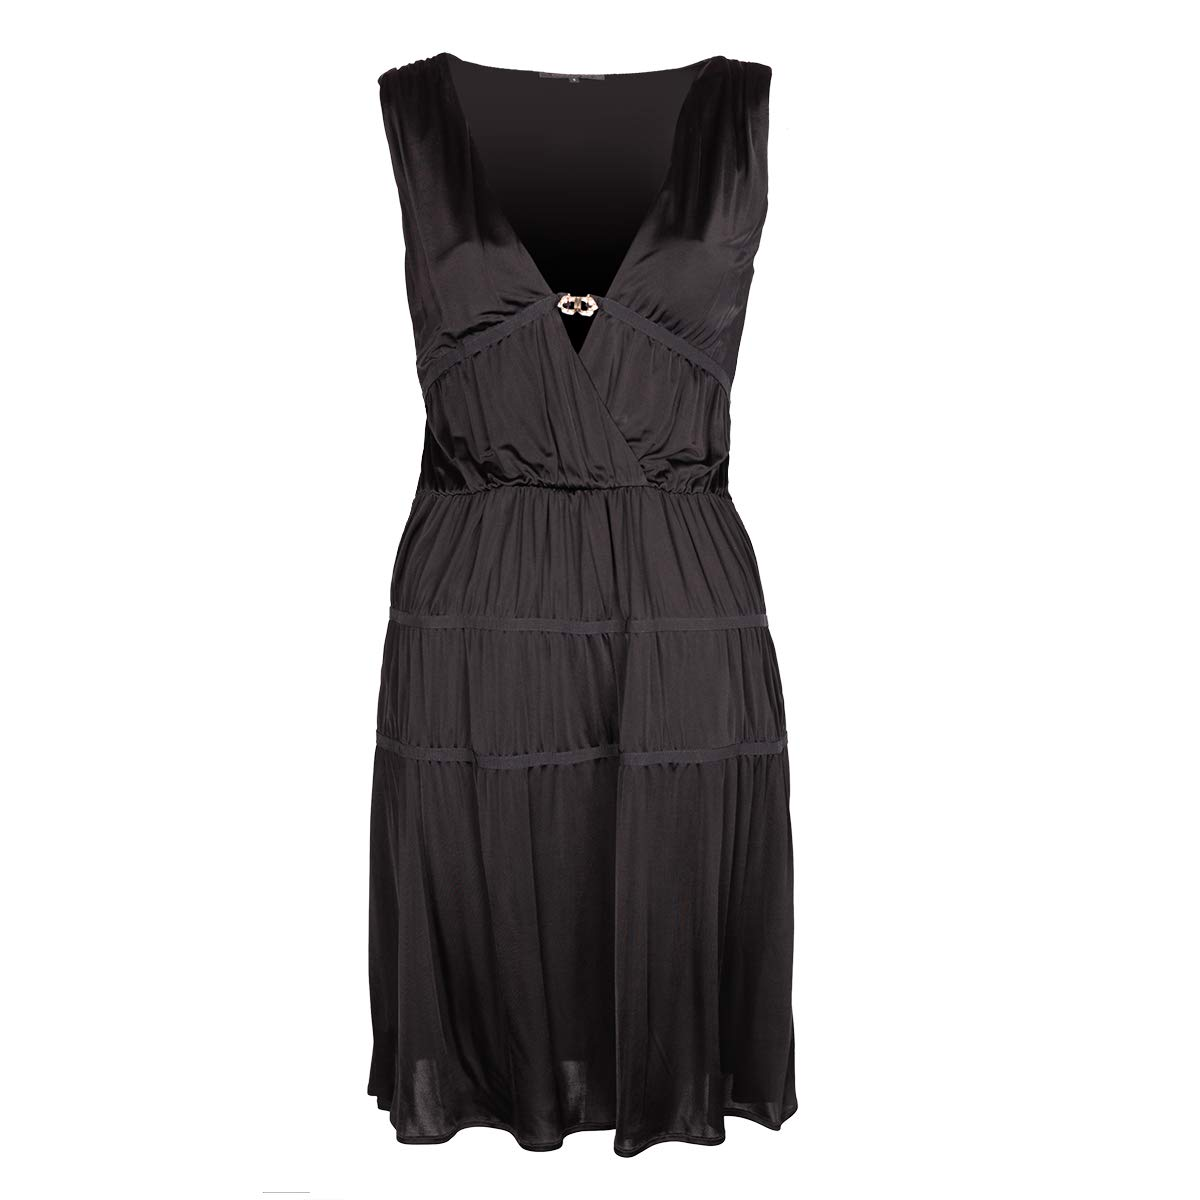 Patrizia Pepe Kleid - 2A1666/AH35-K103 - Size: 36(EU) - IT40